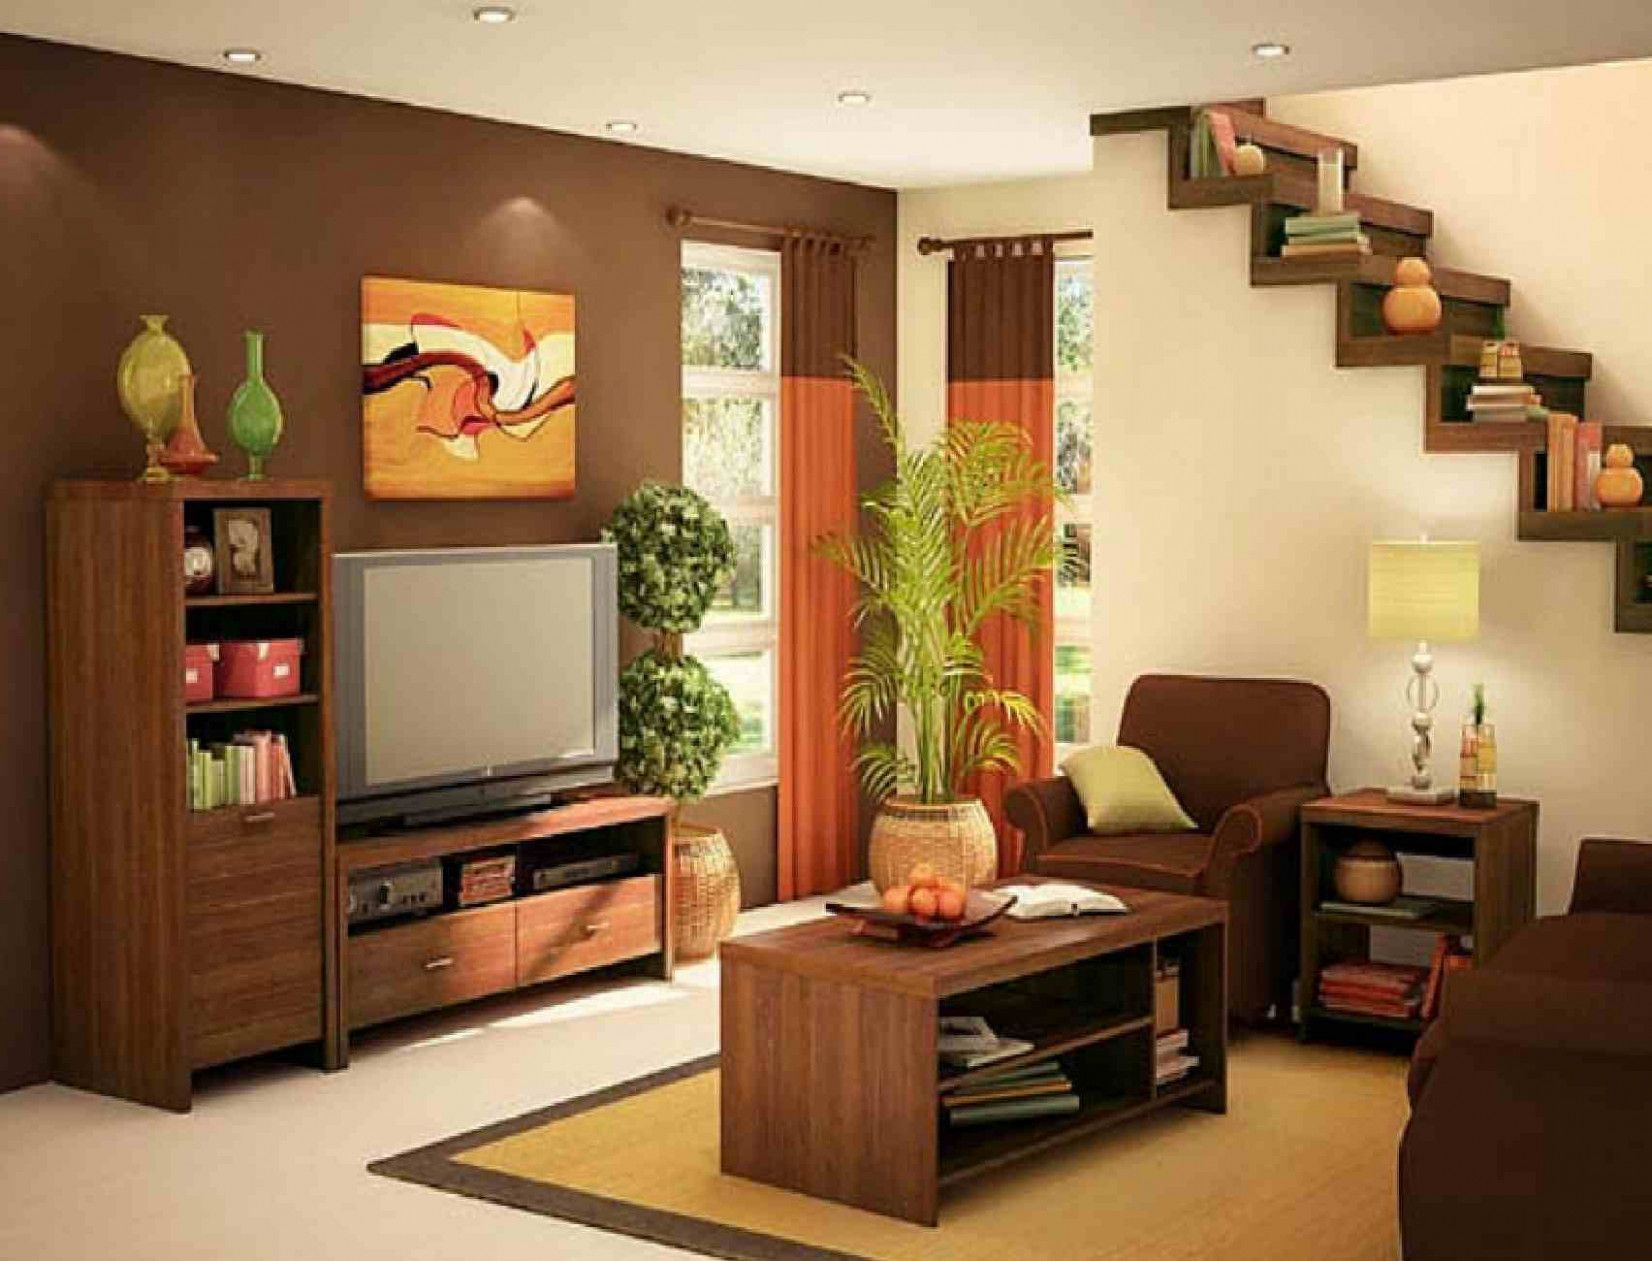 Outstanding Living Room Interior Design India Small House Interior Small House Interior Design Simple Living Room Designs